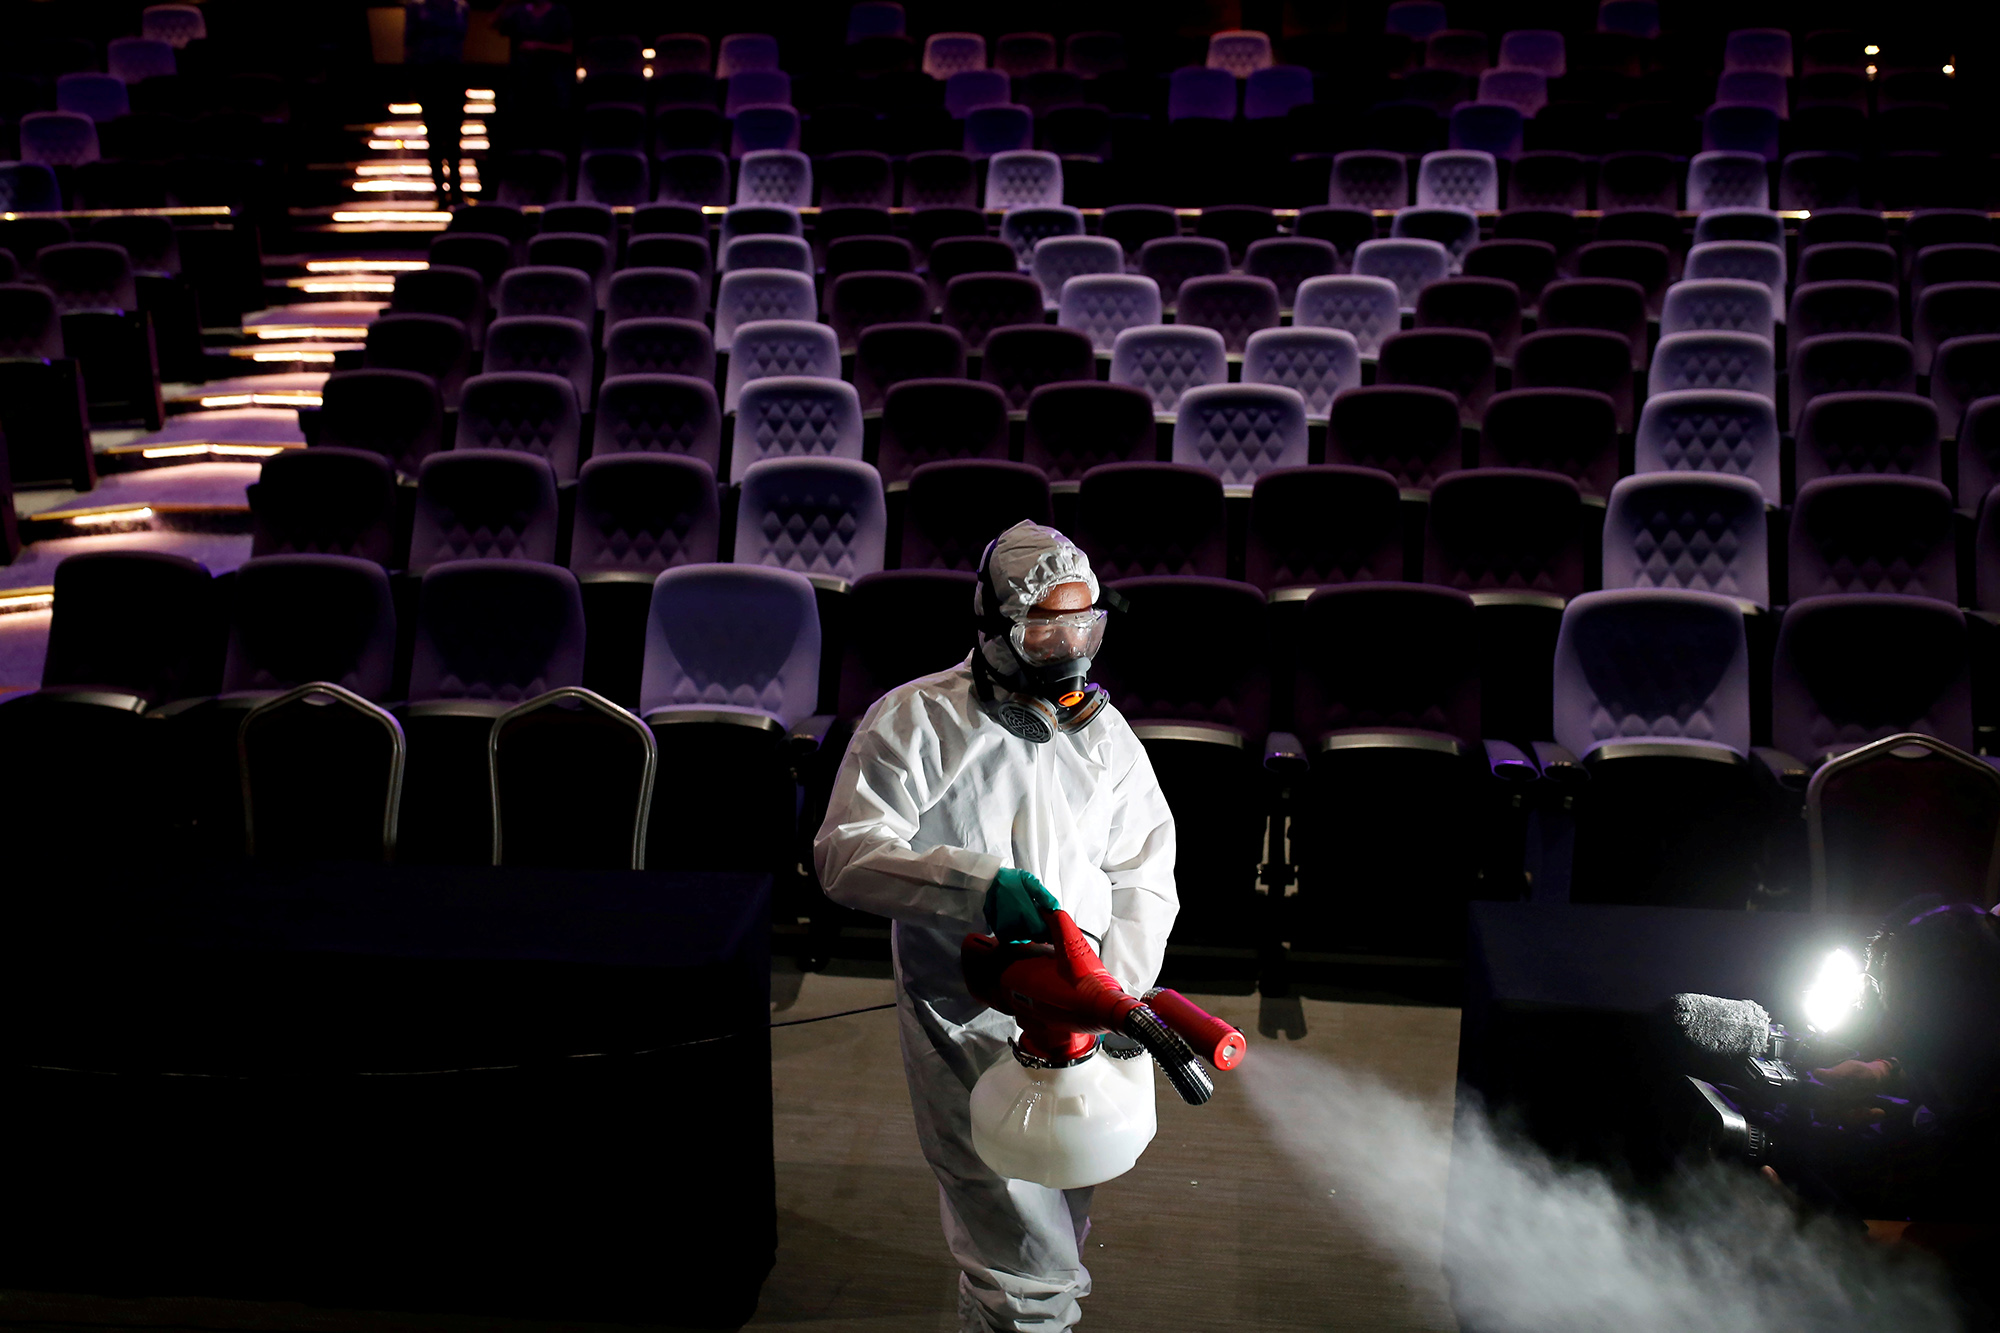 DATE IMPORTED:March 06, 2020A worker sprays disinfectant inside the theatre before the Miss International Queen beauty pageant for transgender women in Pattaya, Thailand March 7, 2020. REUTERS/Soe Zeya Tun TPX IMAGES OF THE DAY